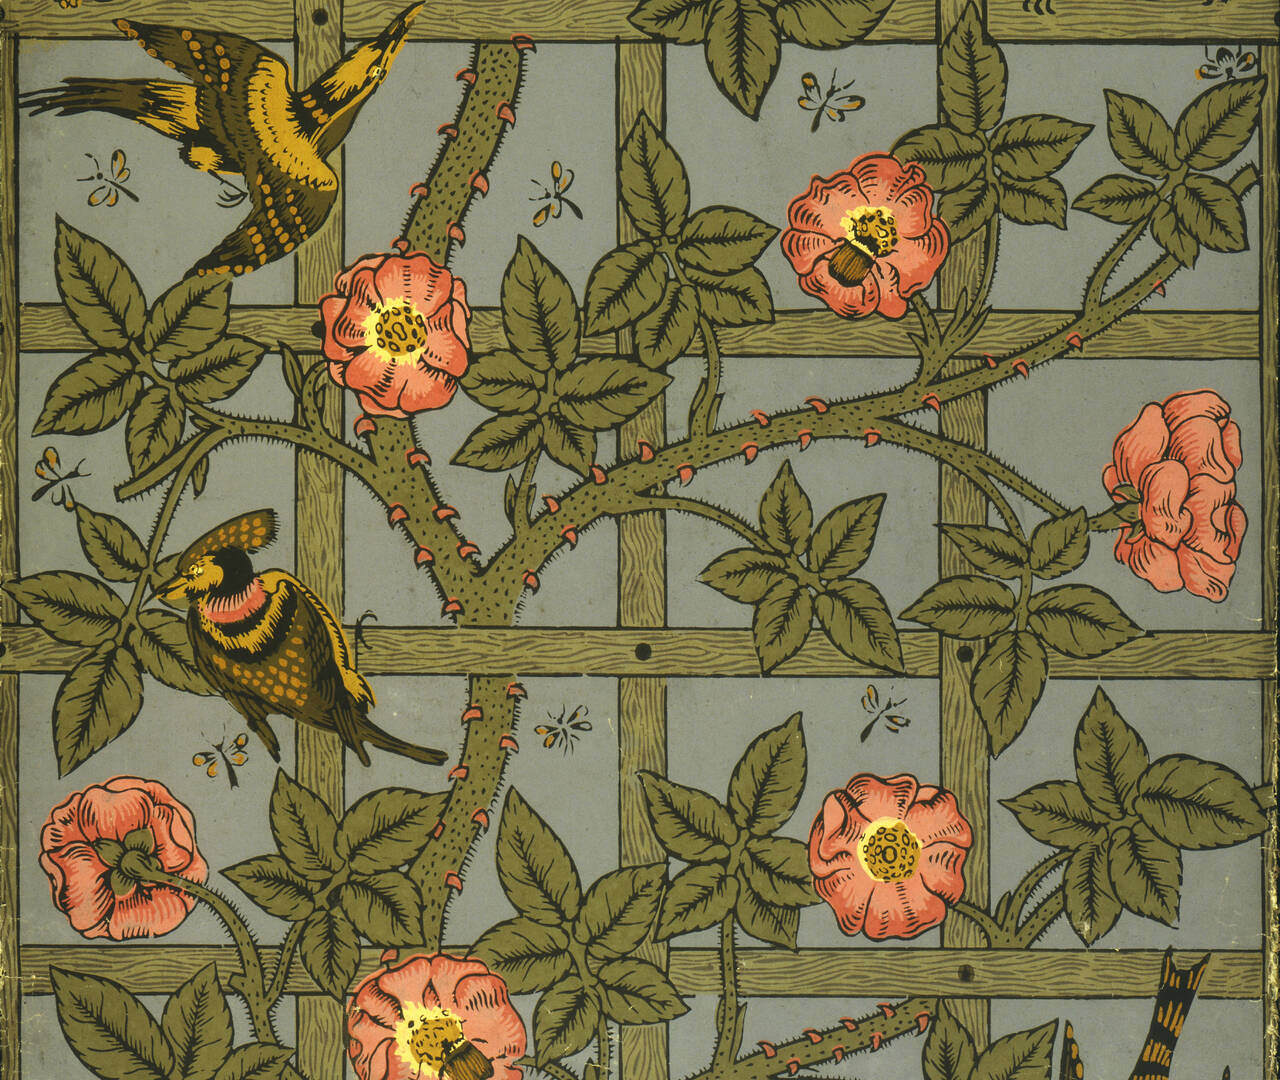 Online Course—William Morris: The Beauty of Life